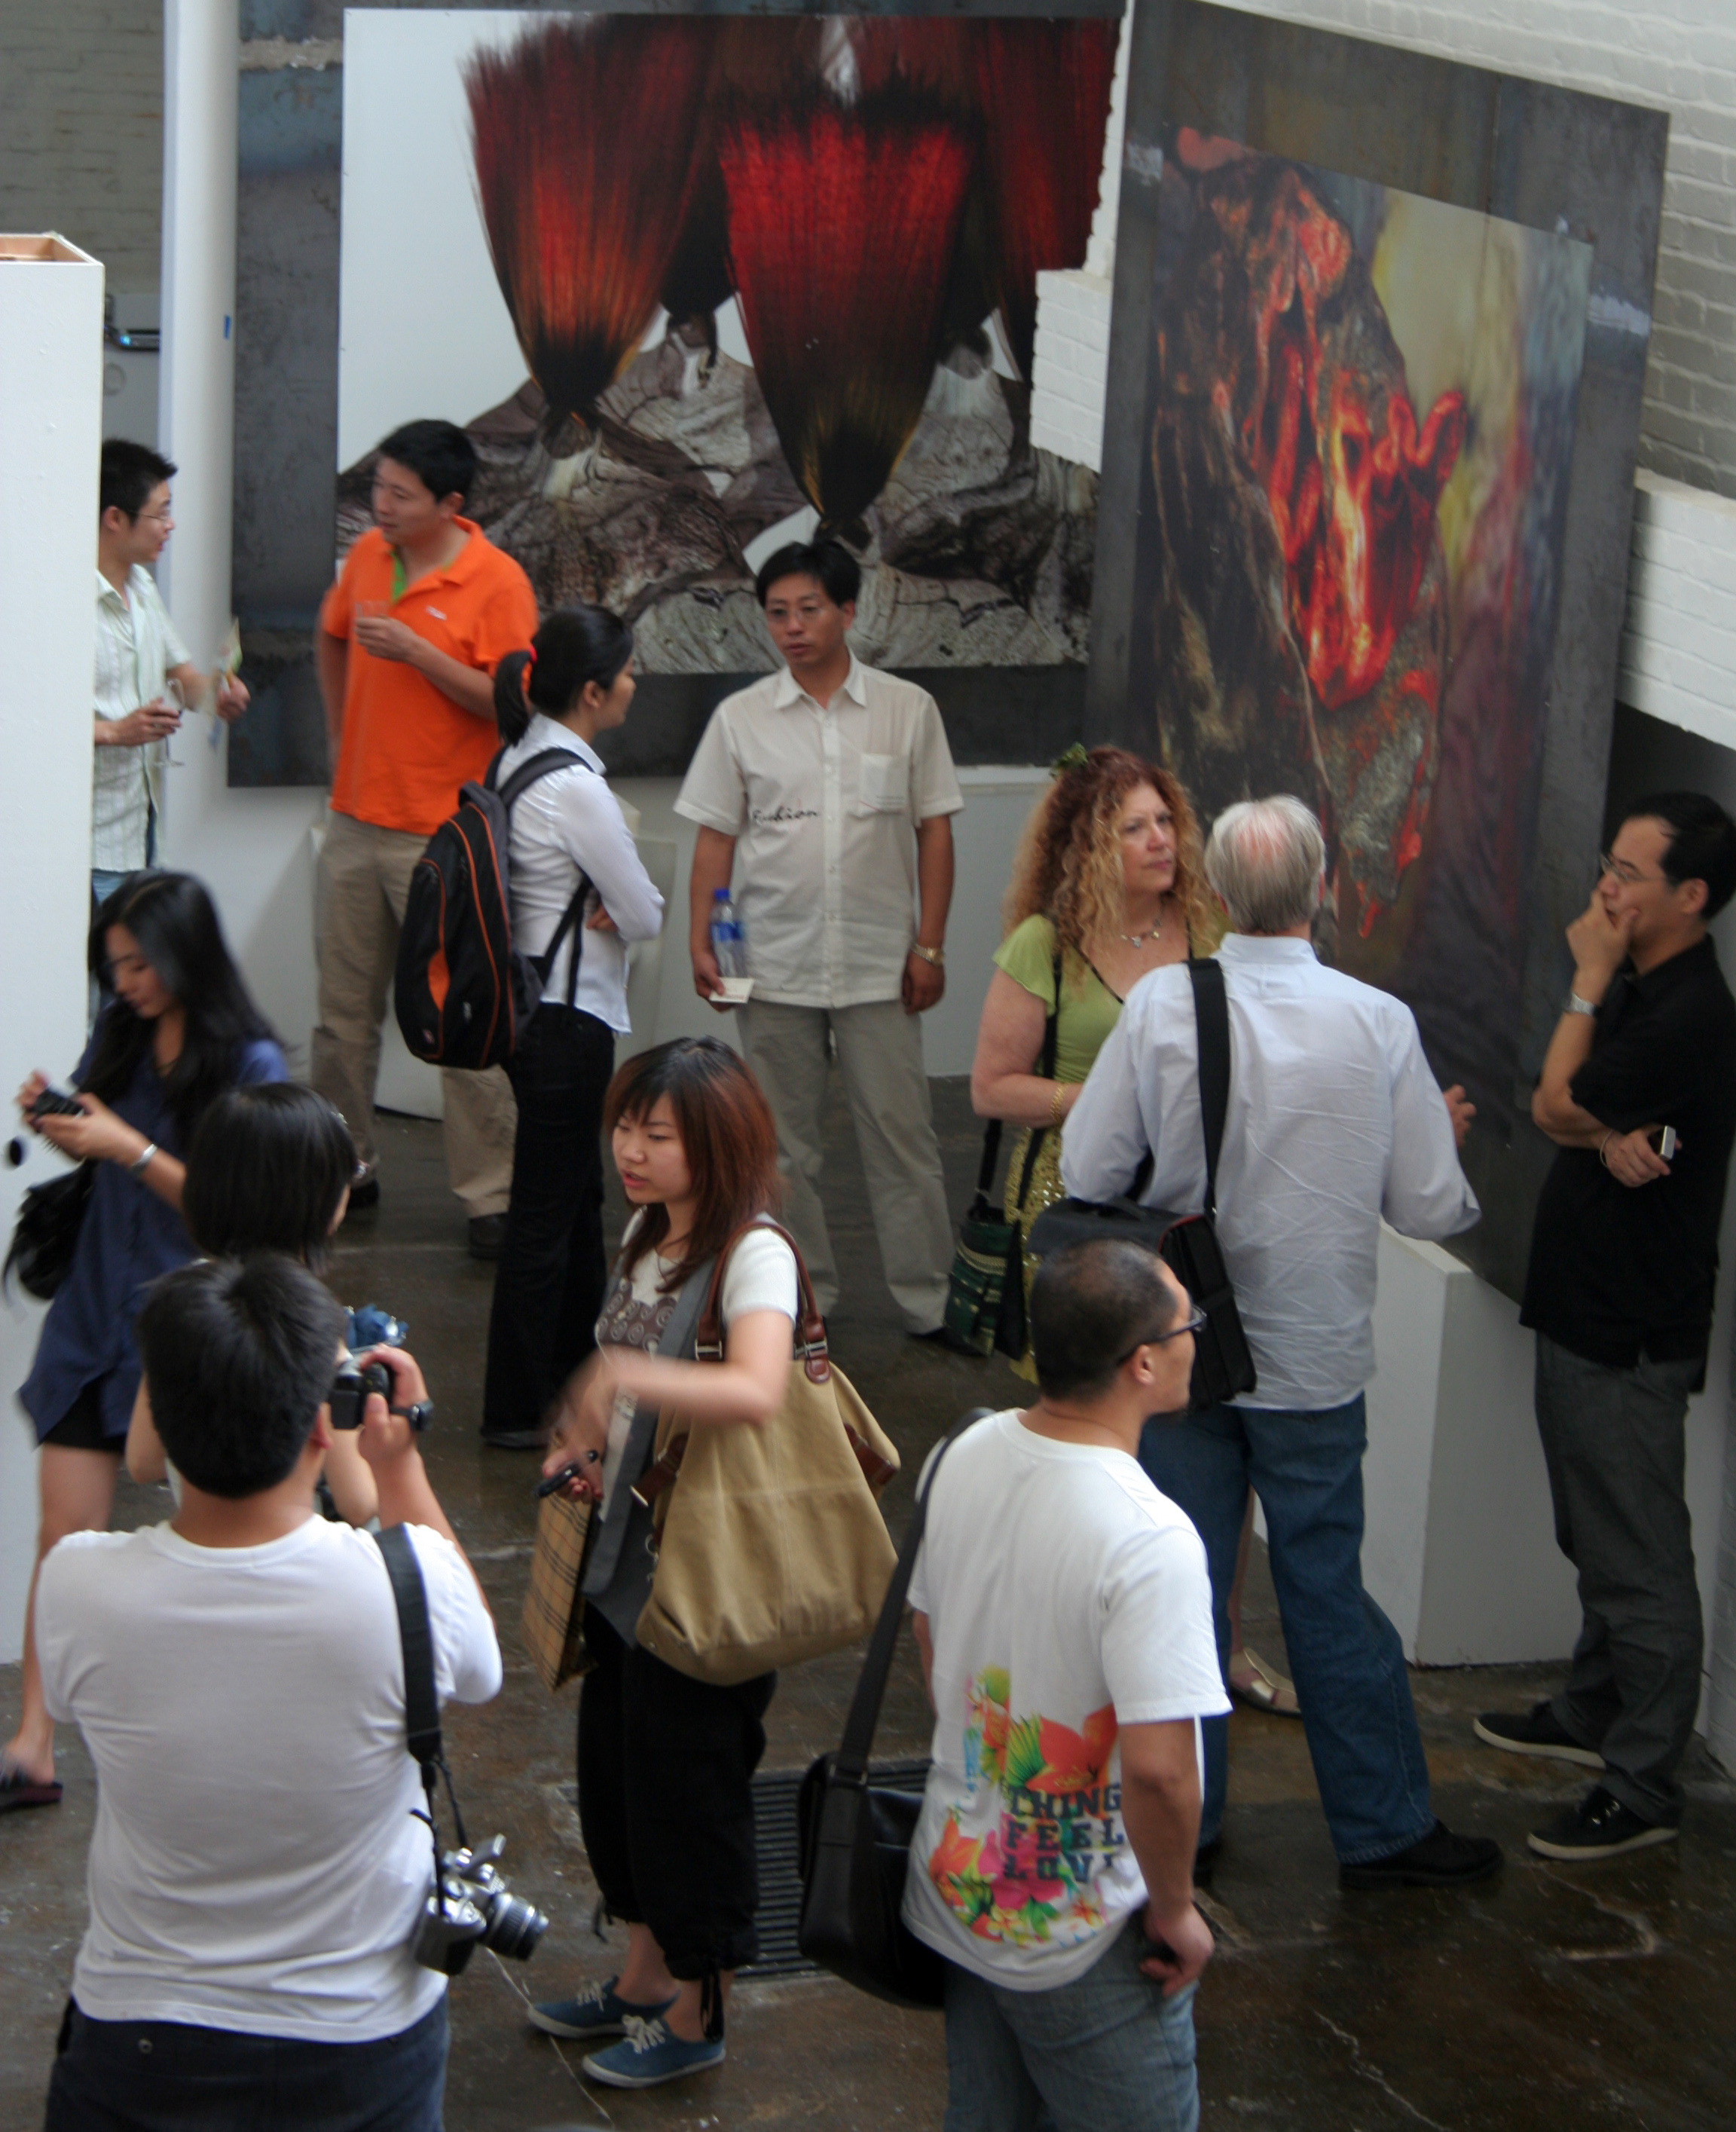 Beijing 798 Yuanfen New Media Art Space / 798緣分新媒體藝術空間個展 (2009)